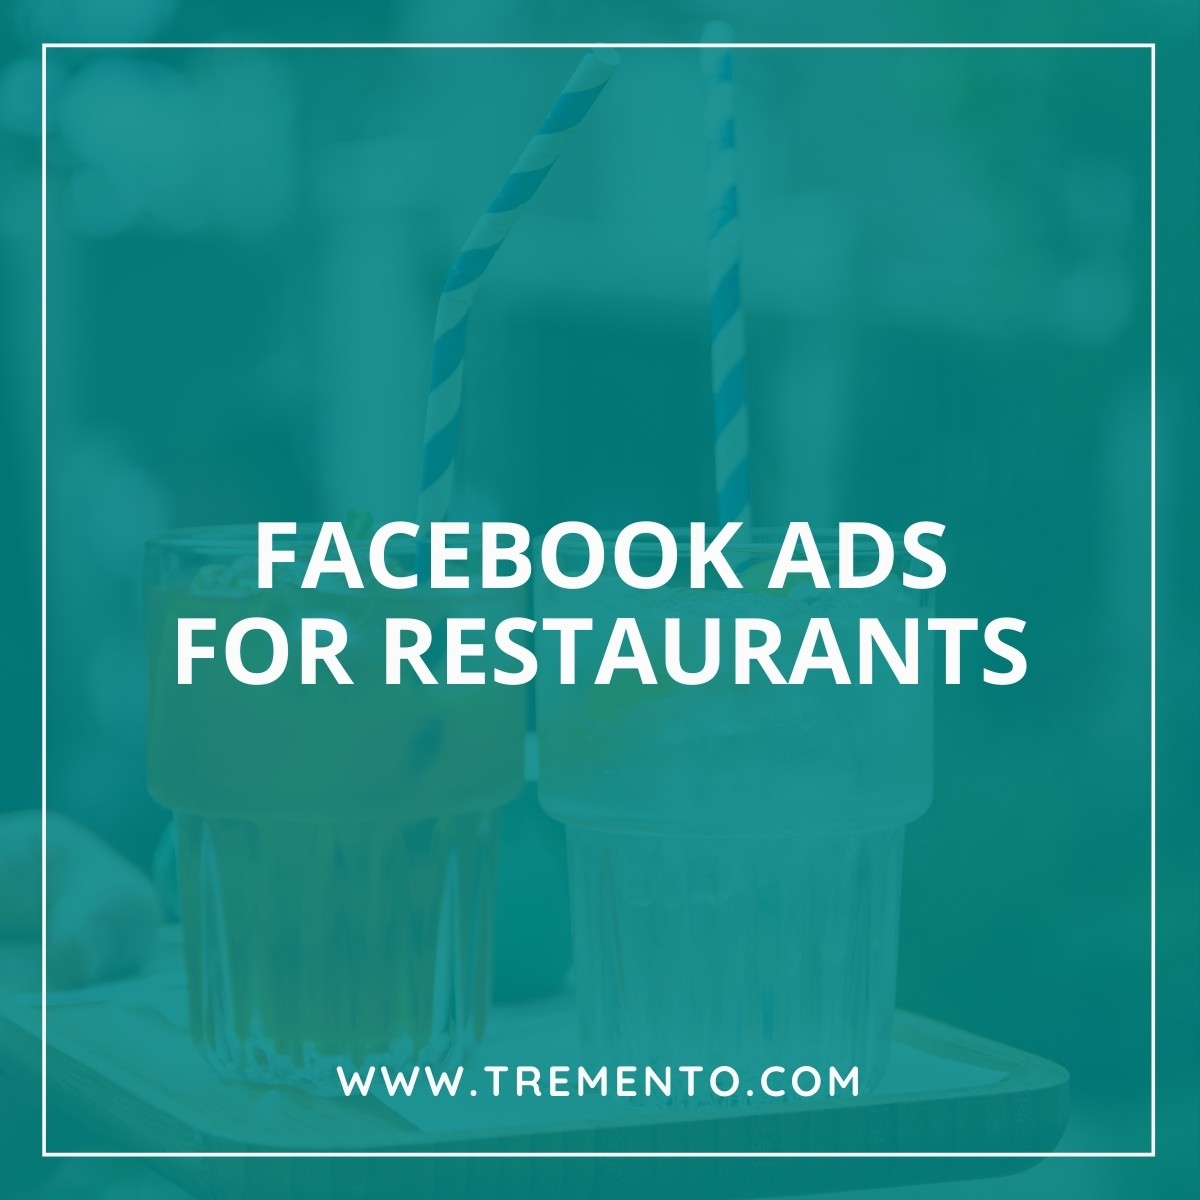 Restaurant Facebook Ads Tips